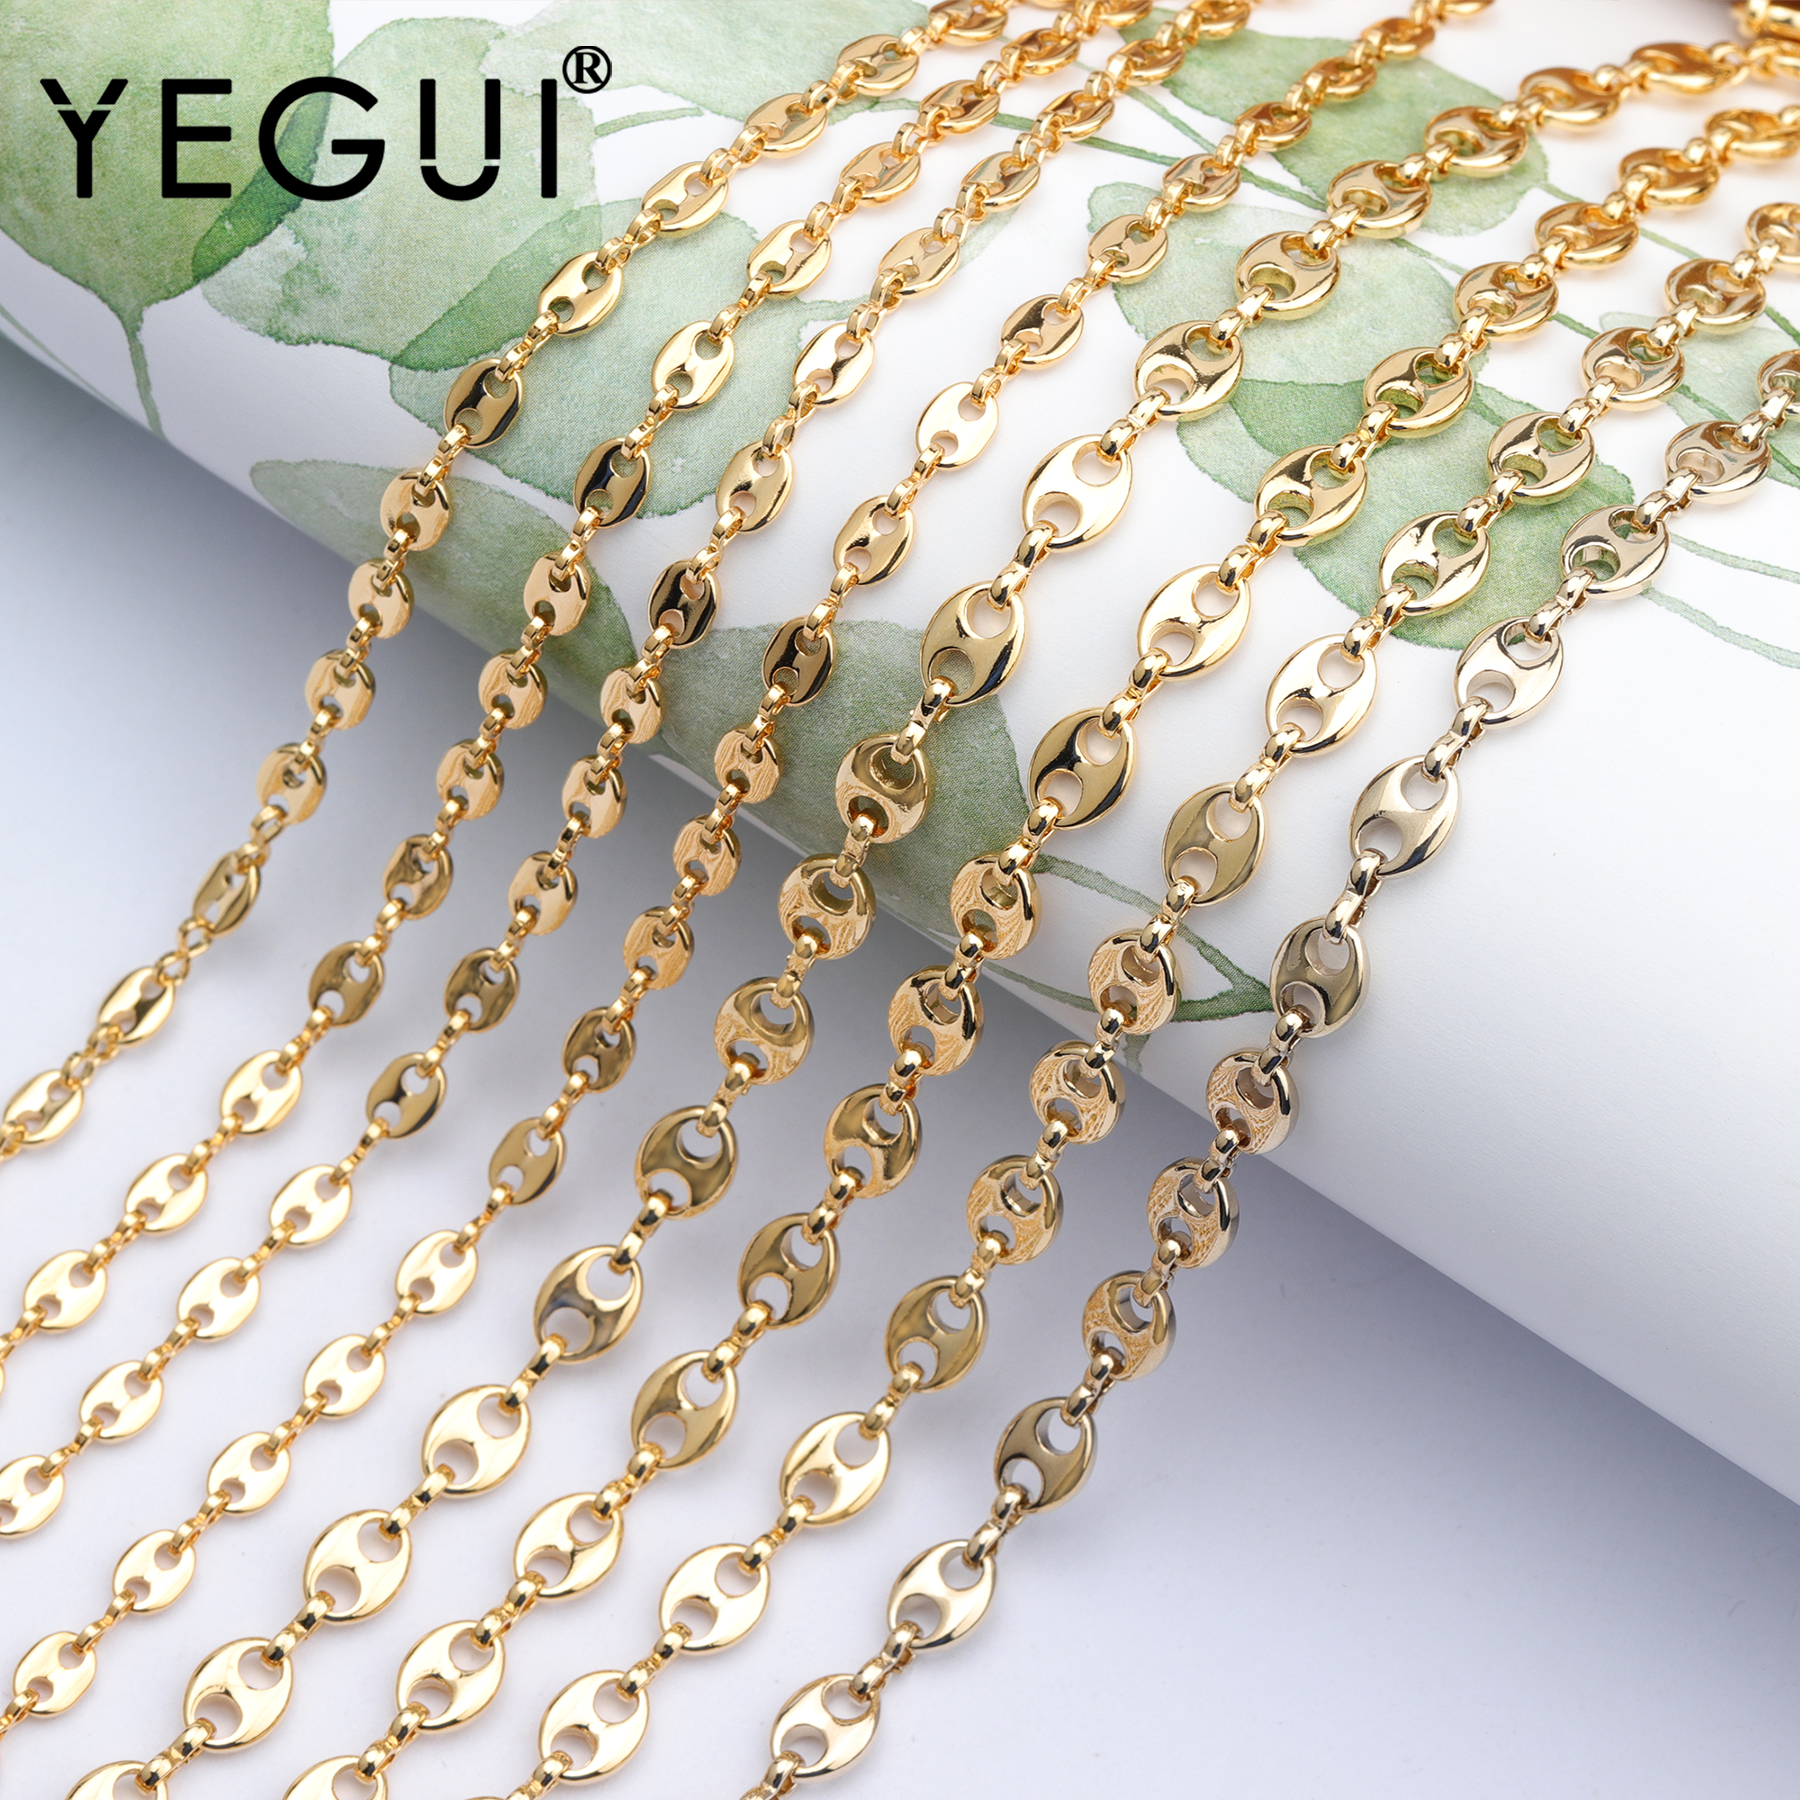 YEGUI C72,jewelry Accessories,diy Chain,18k Gold Plated,hand Made,copper Metal,charms,diy Chain Necklace,jewelry Making,1m/lot